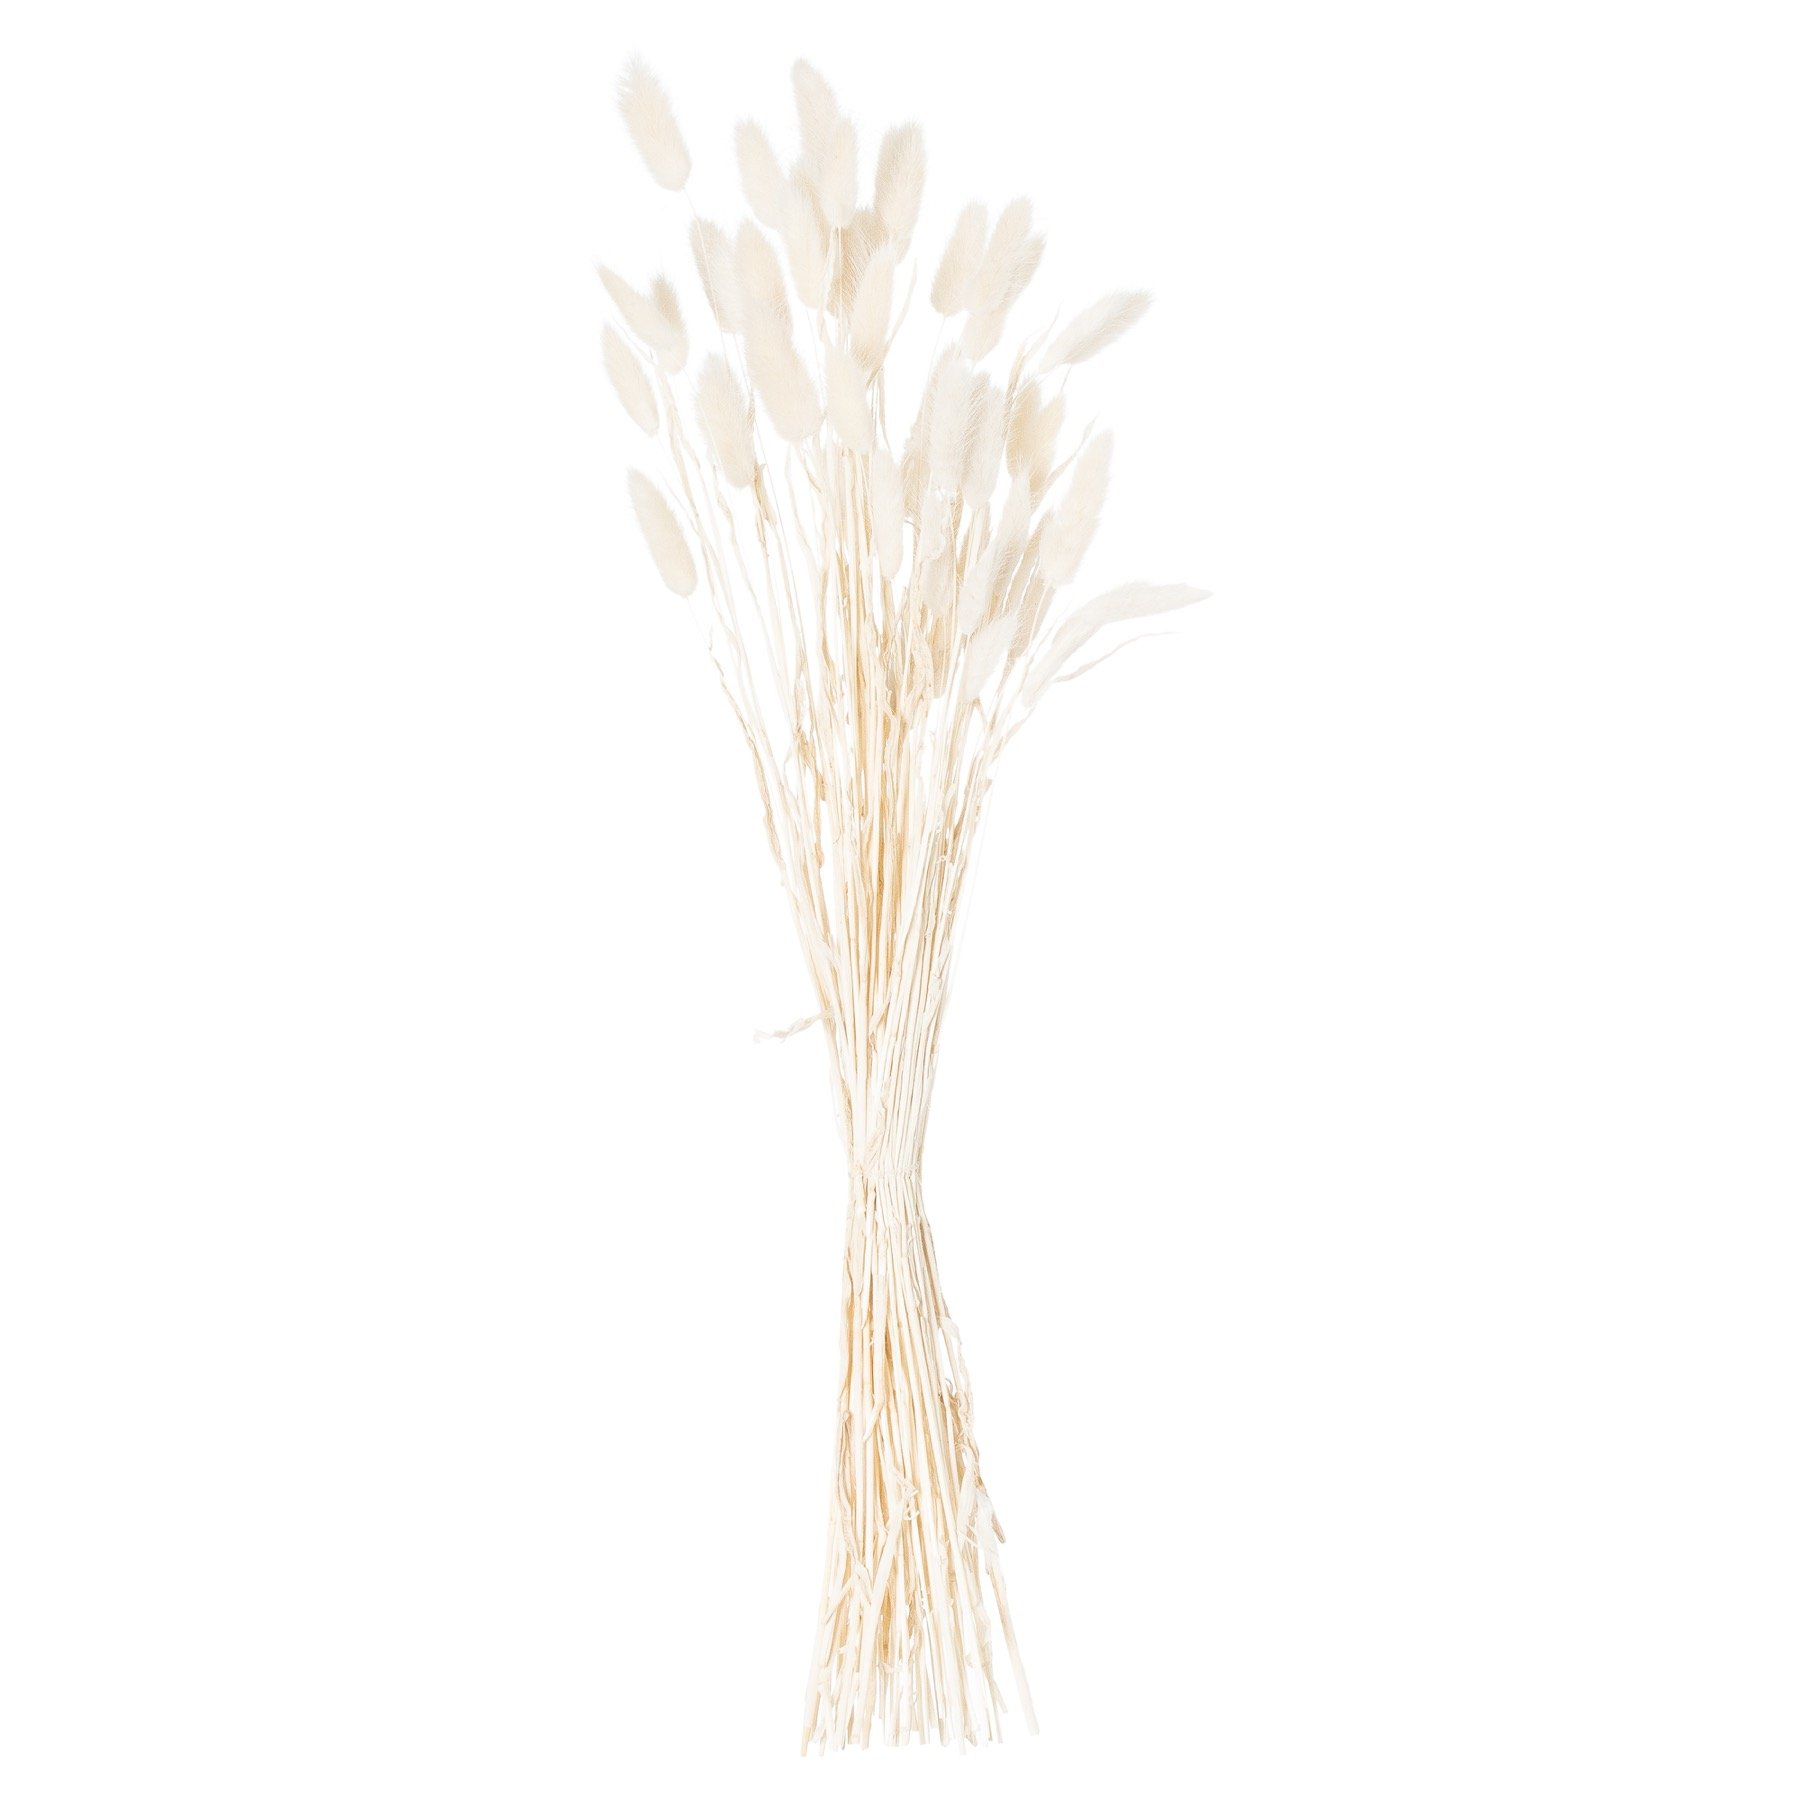 Dried White Bunny Tail Bunch Of 60 - Image 2